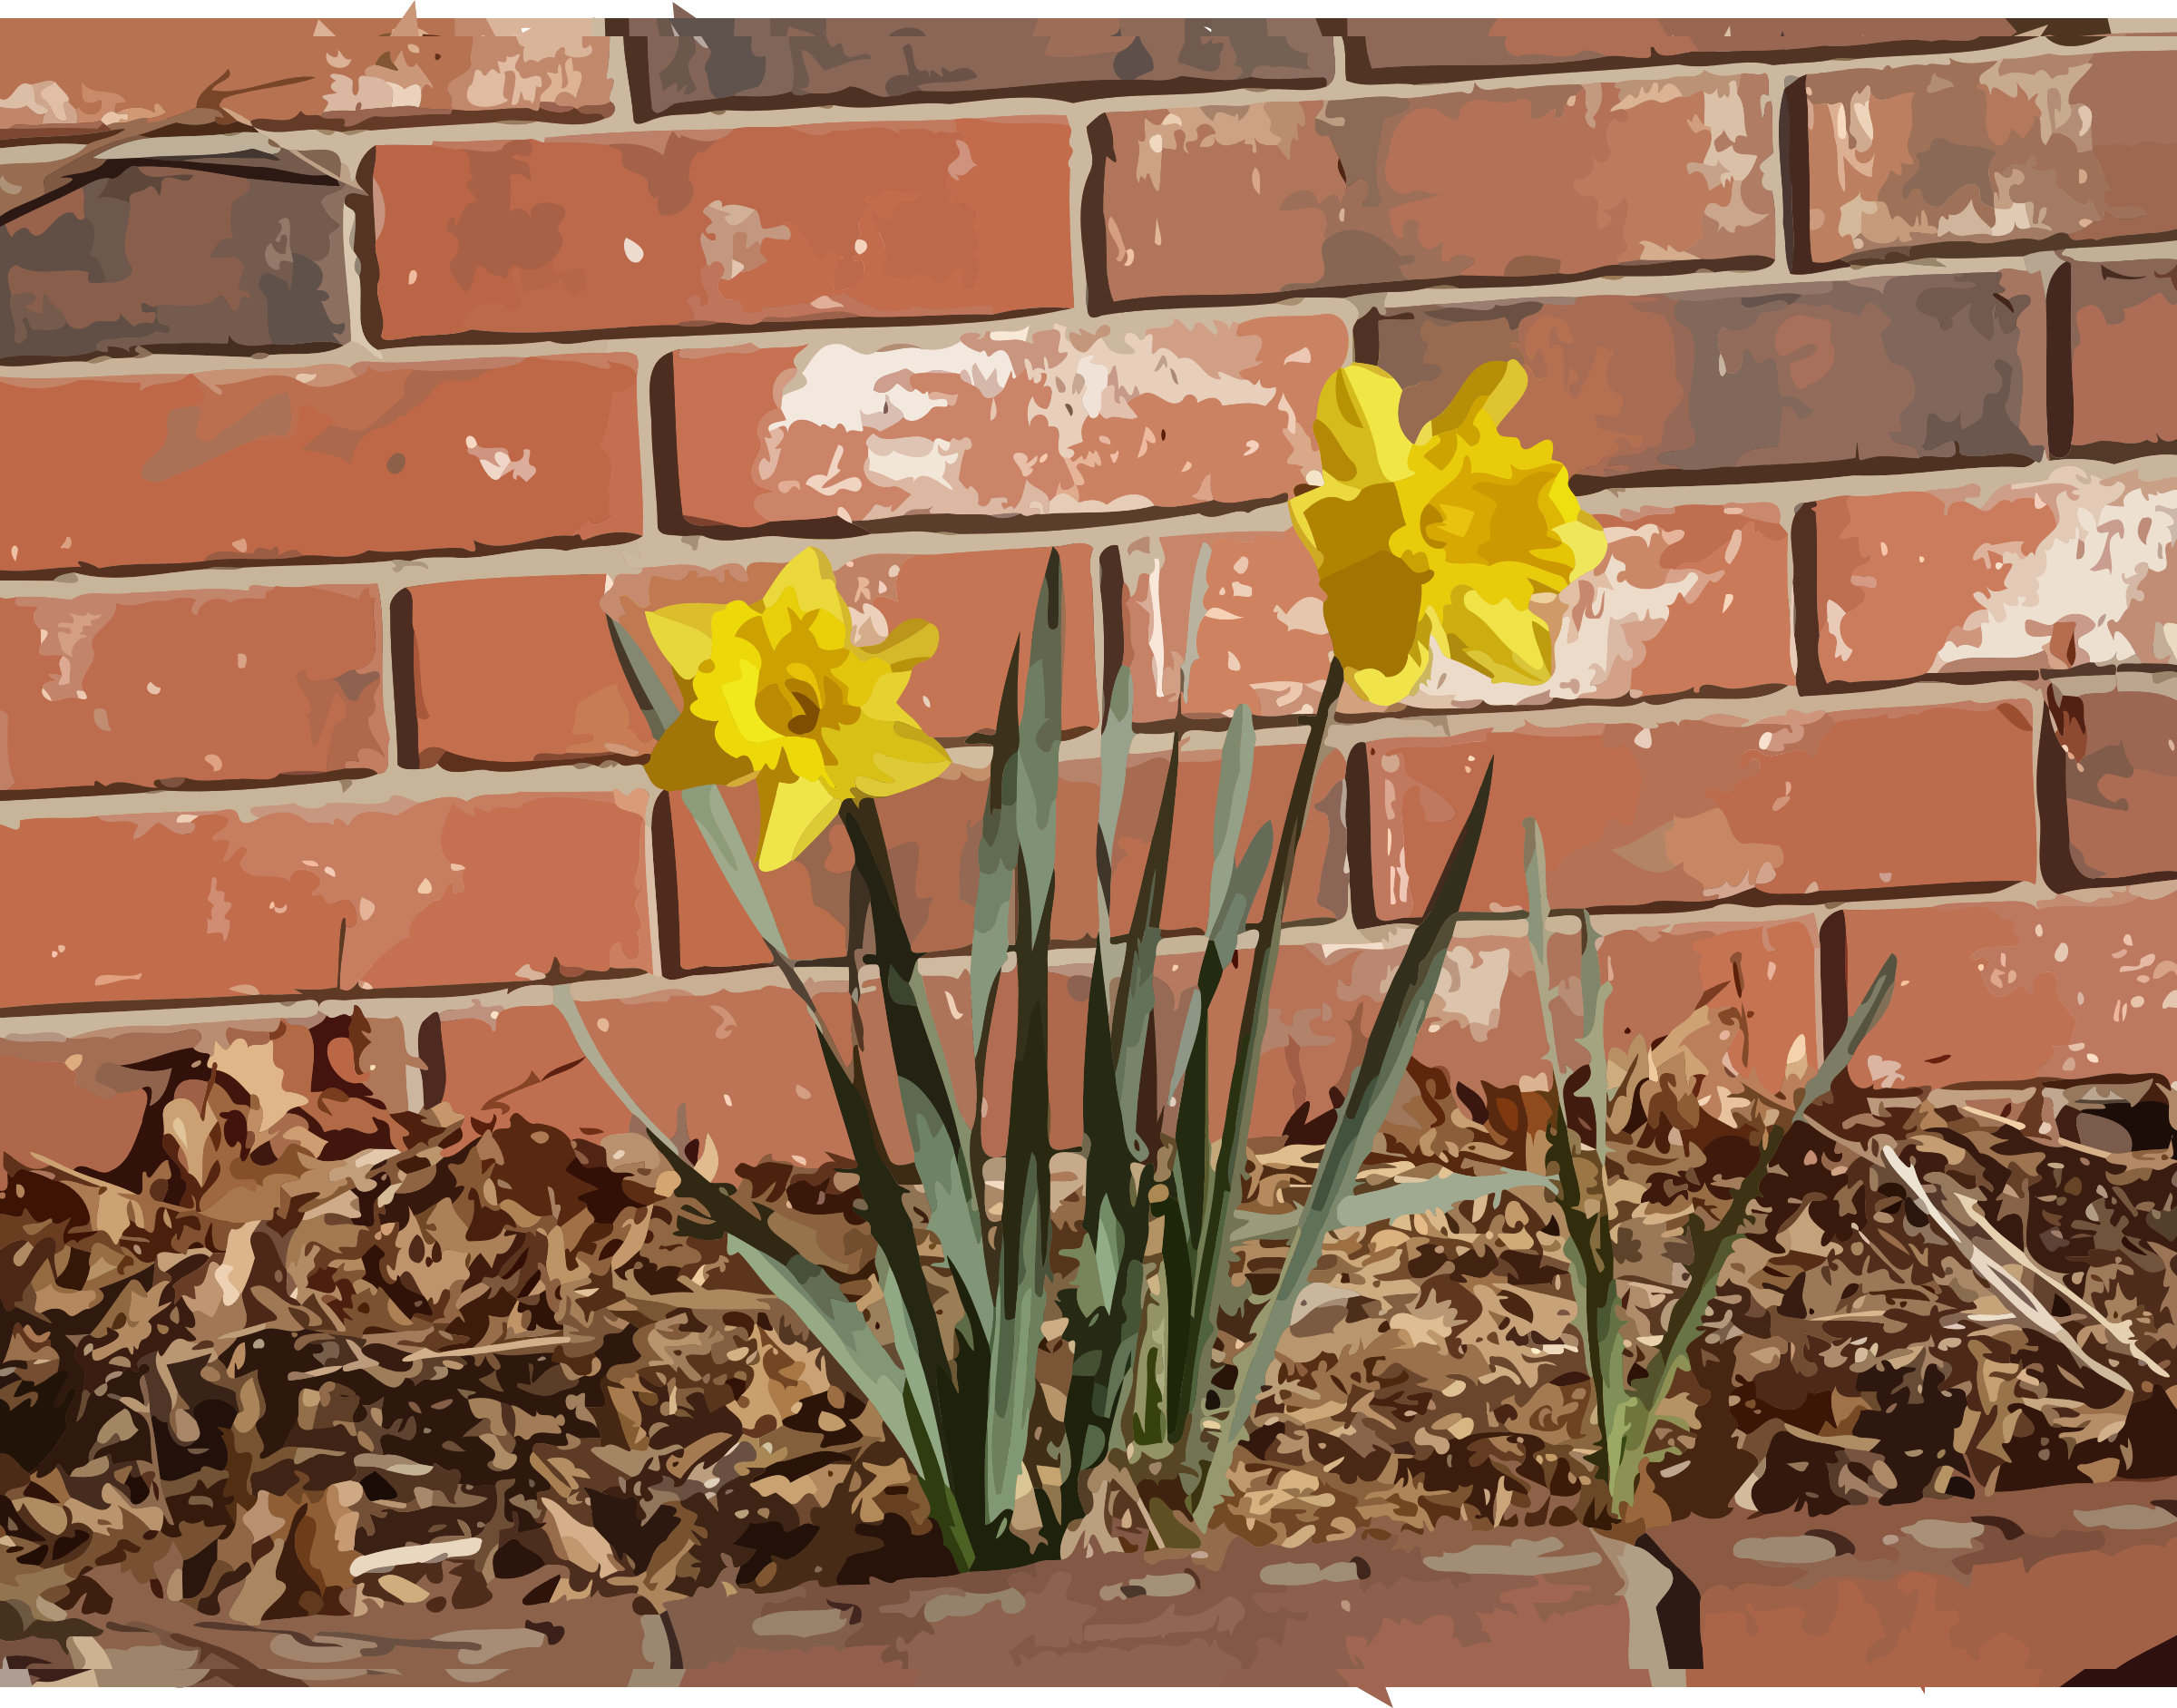 daffodils-04 by datteber